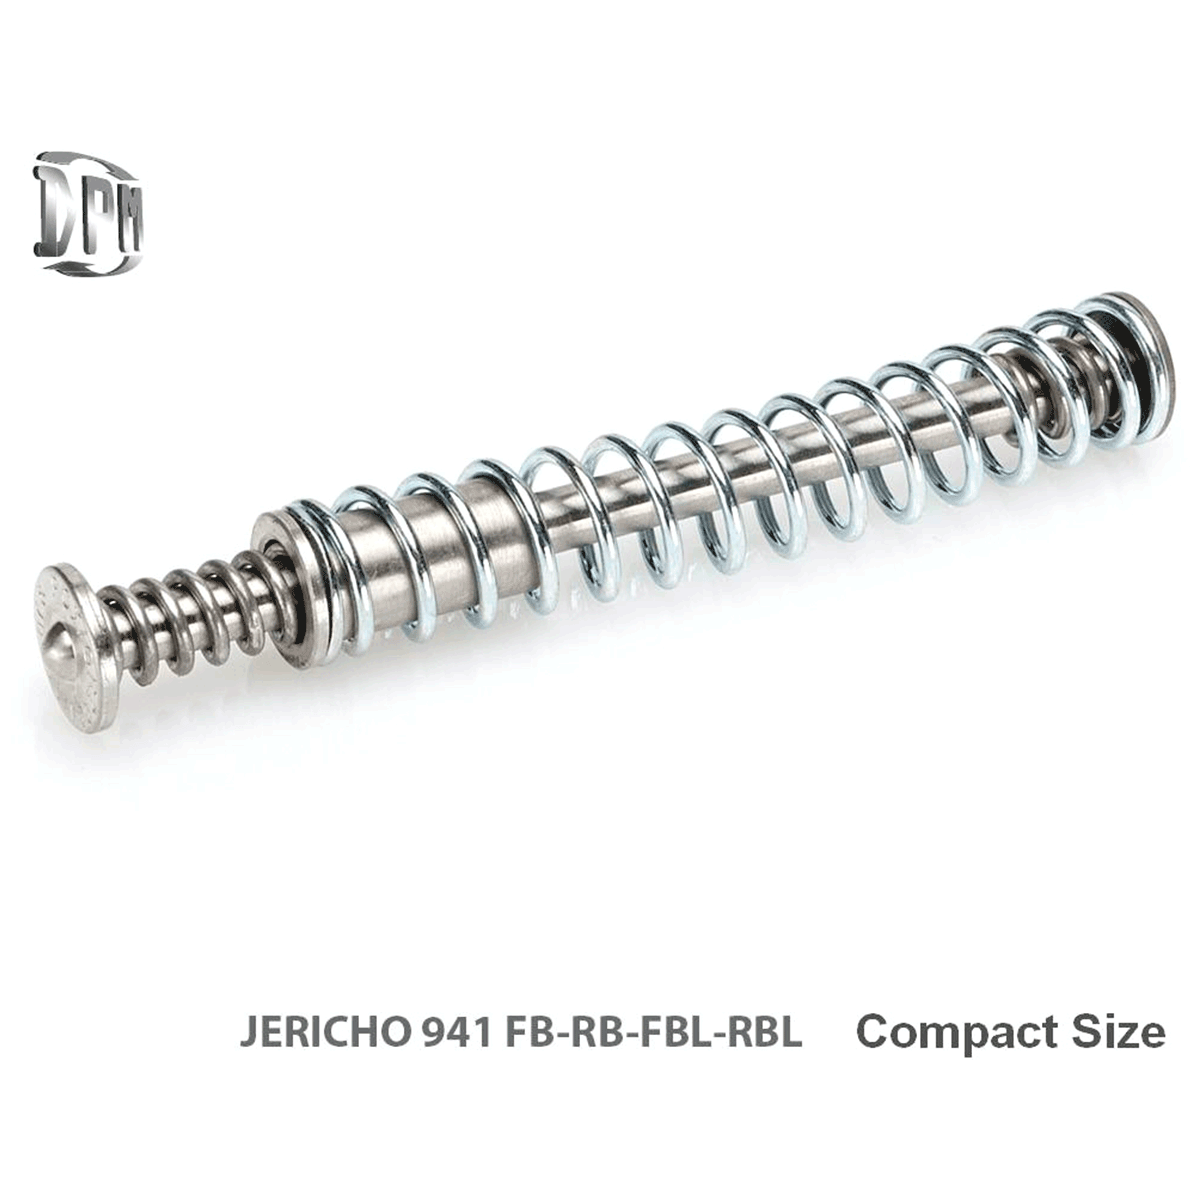 DPM Recoil Spring System Jericho 941 Compact FB RB Rod FBL RBL Rod RB Length 75mm/2.95